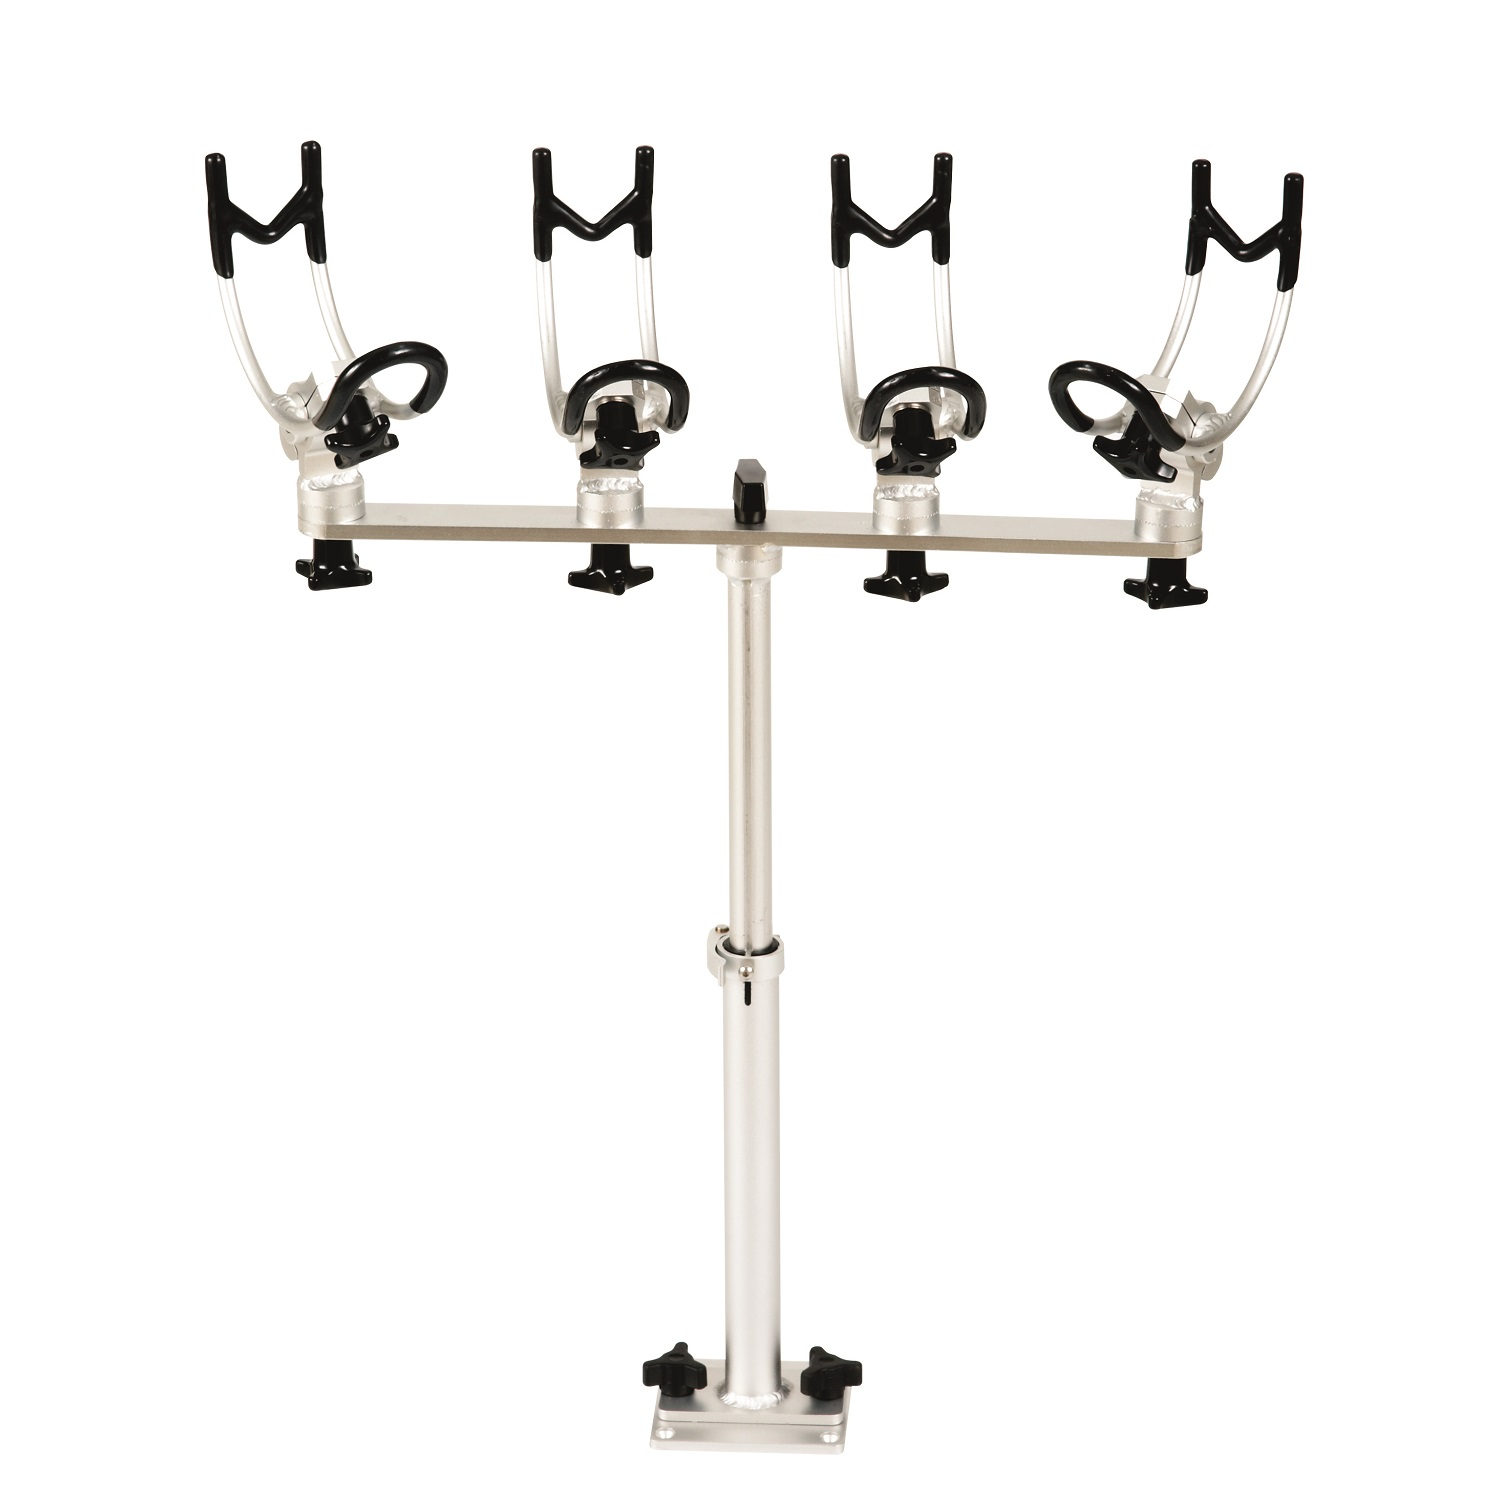 Click here to buy Millennium Spyder LOK Rod Holder by MILLENNIUM OUTDOORS.